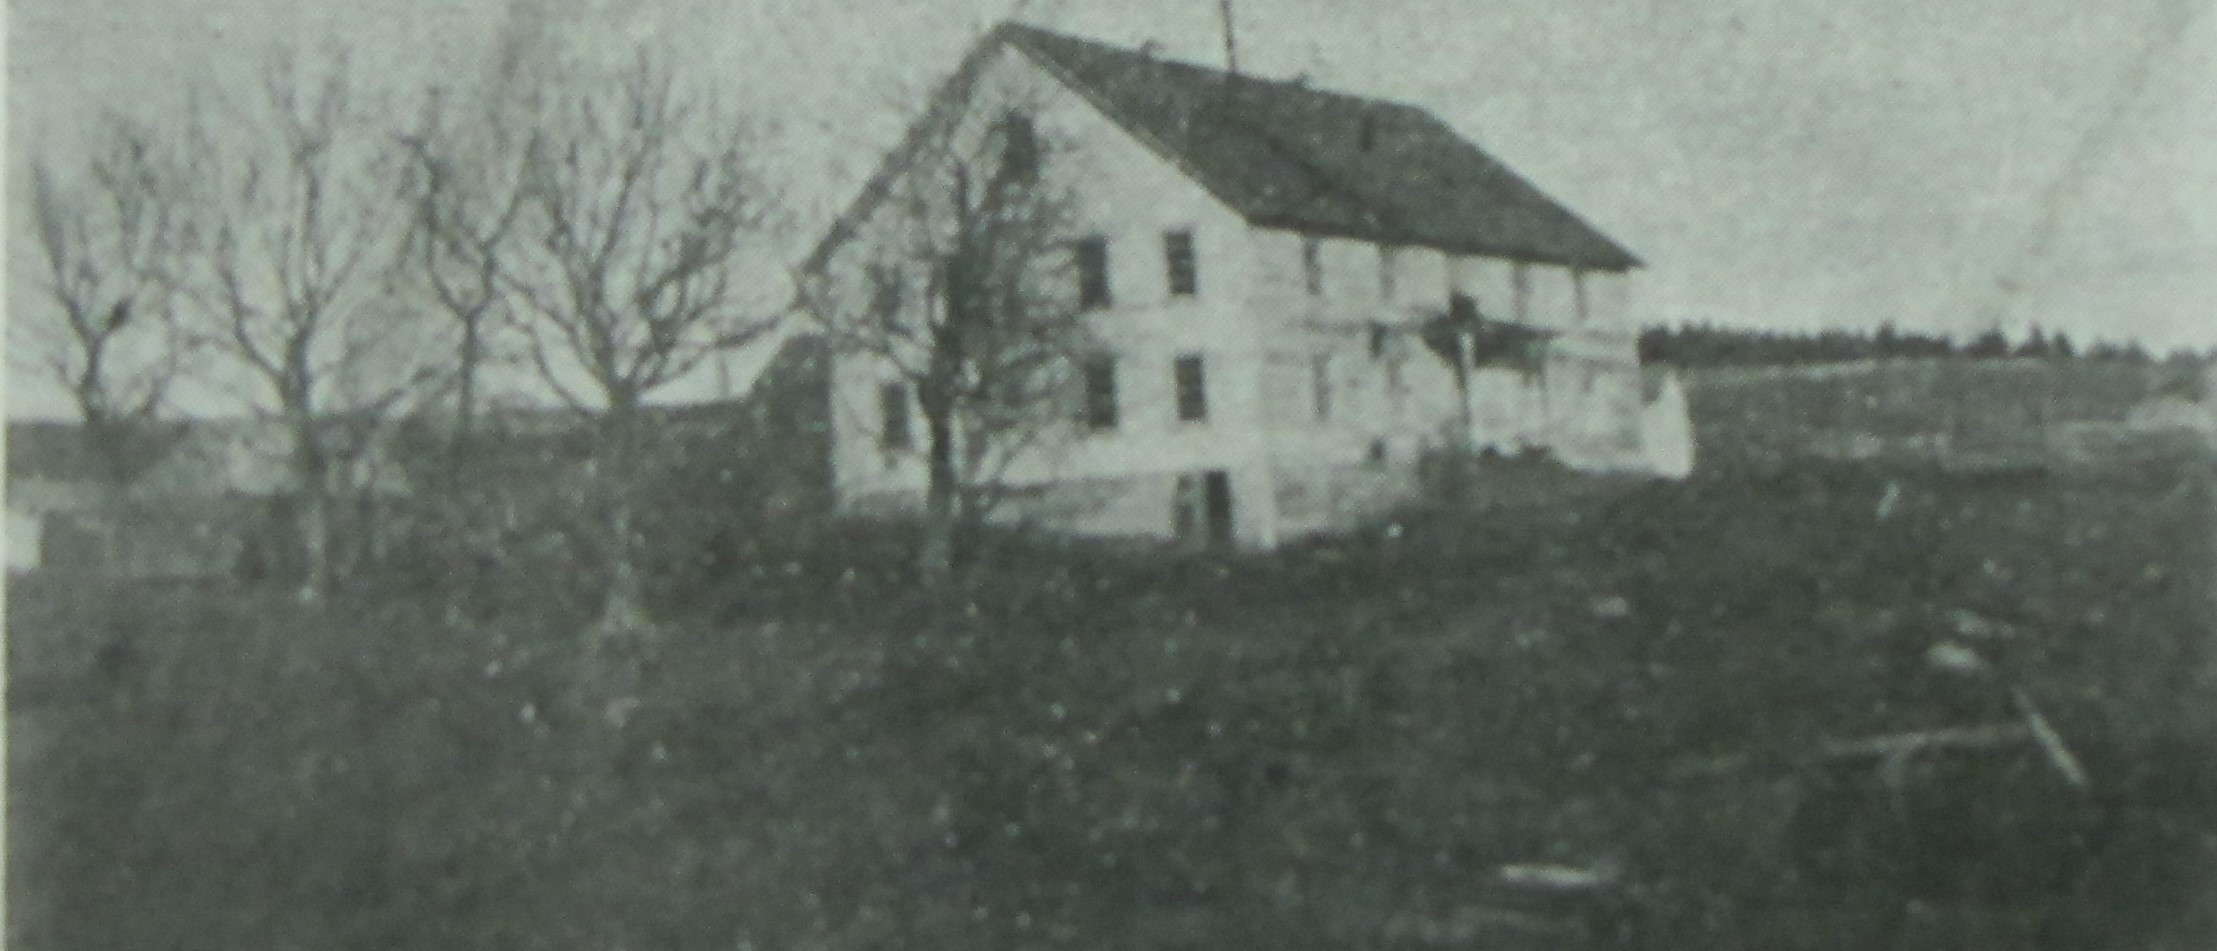 The Building of St. Herman Orphanage in Kodiak, AK (end of 19th, beginning of 20th century)